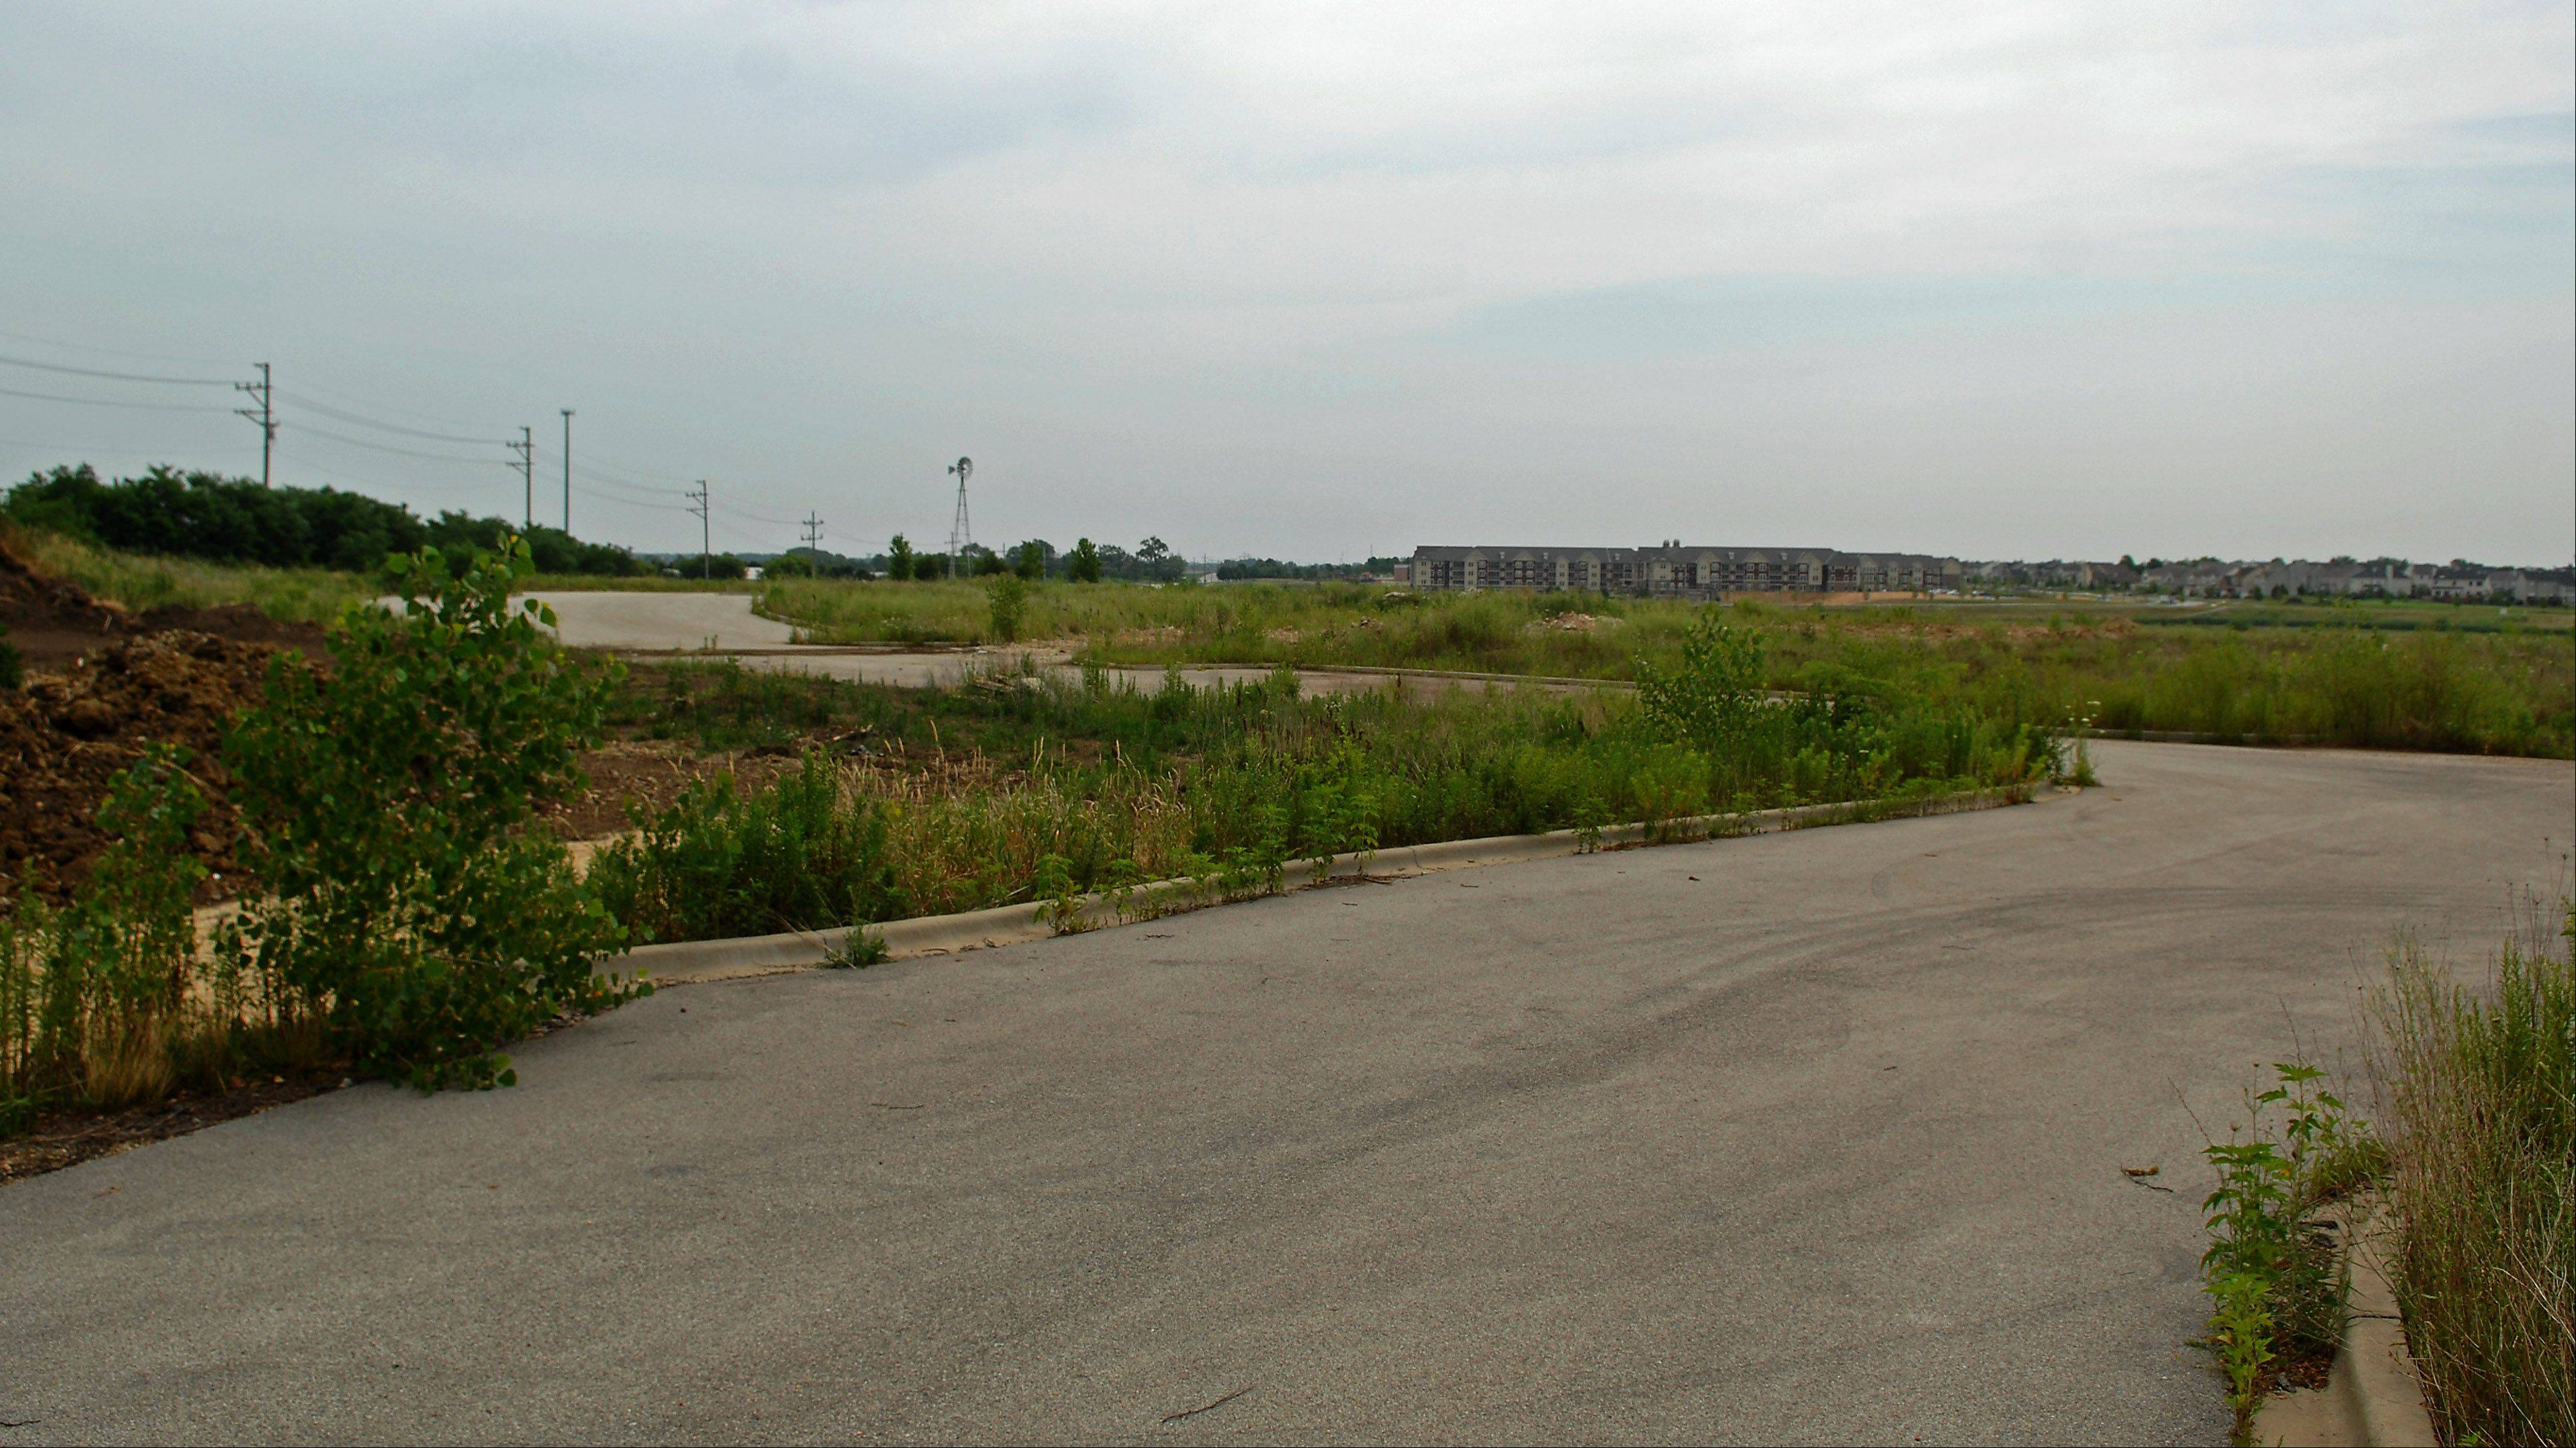 There is a plan by Shodeen to turn what was intended to be 210,000 square feet of commercial property into 268 apartments on this land in Mill Creek in Geneva.